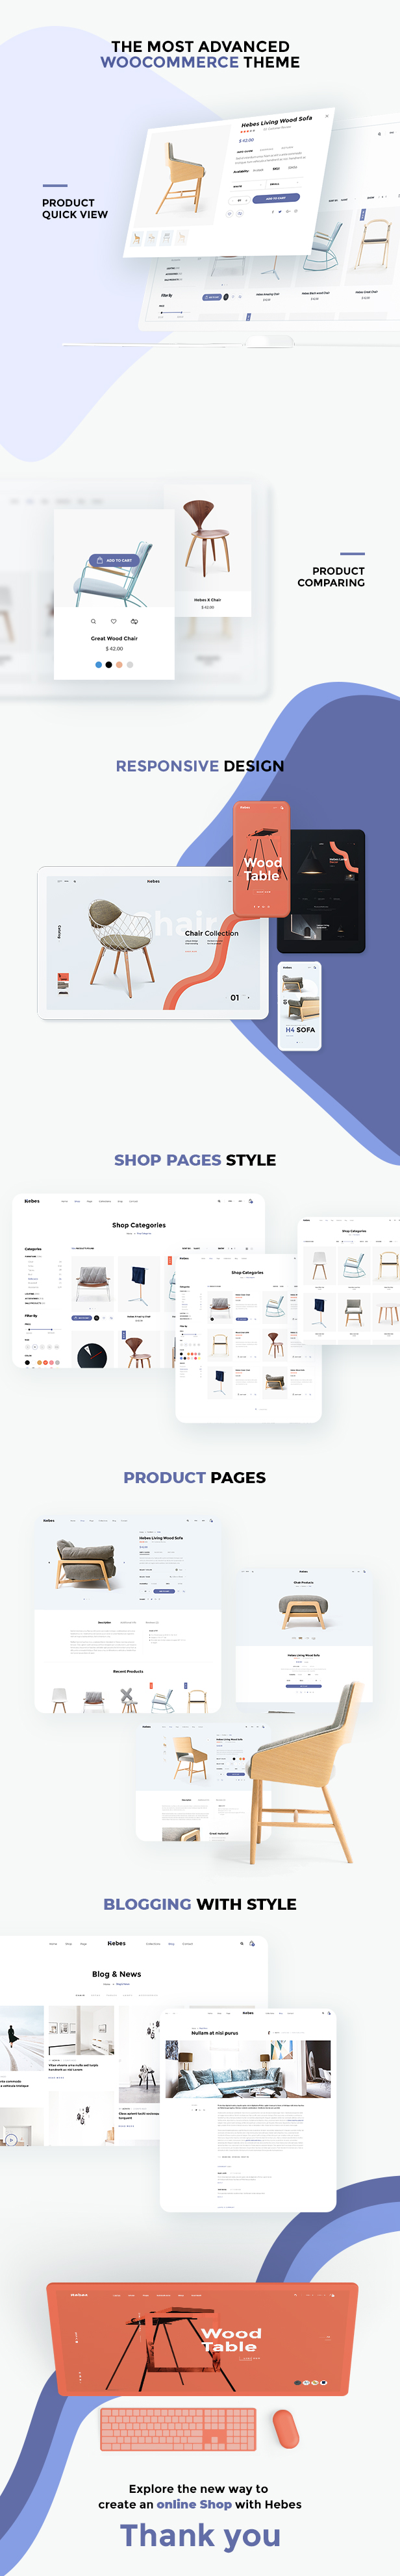 Hebes - Elegent MultiPurpose WooCommerce WordPress Theme - 10